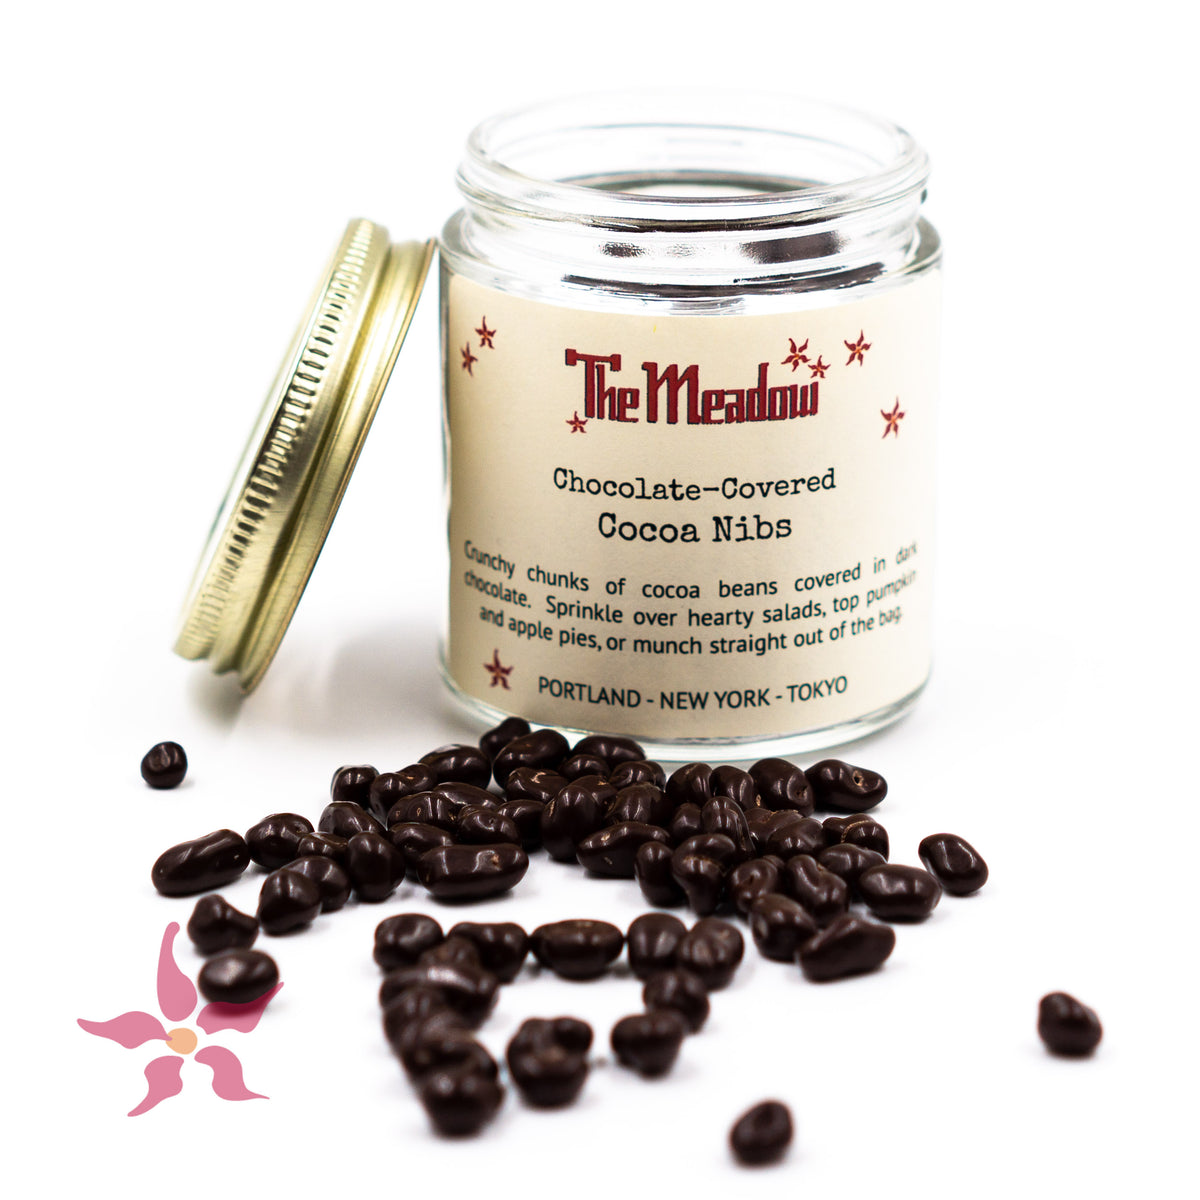 The Meadow Chocolate Covered Cocoa Nibs